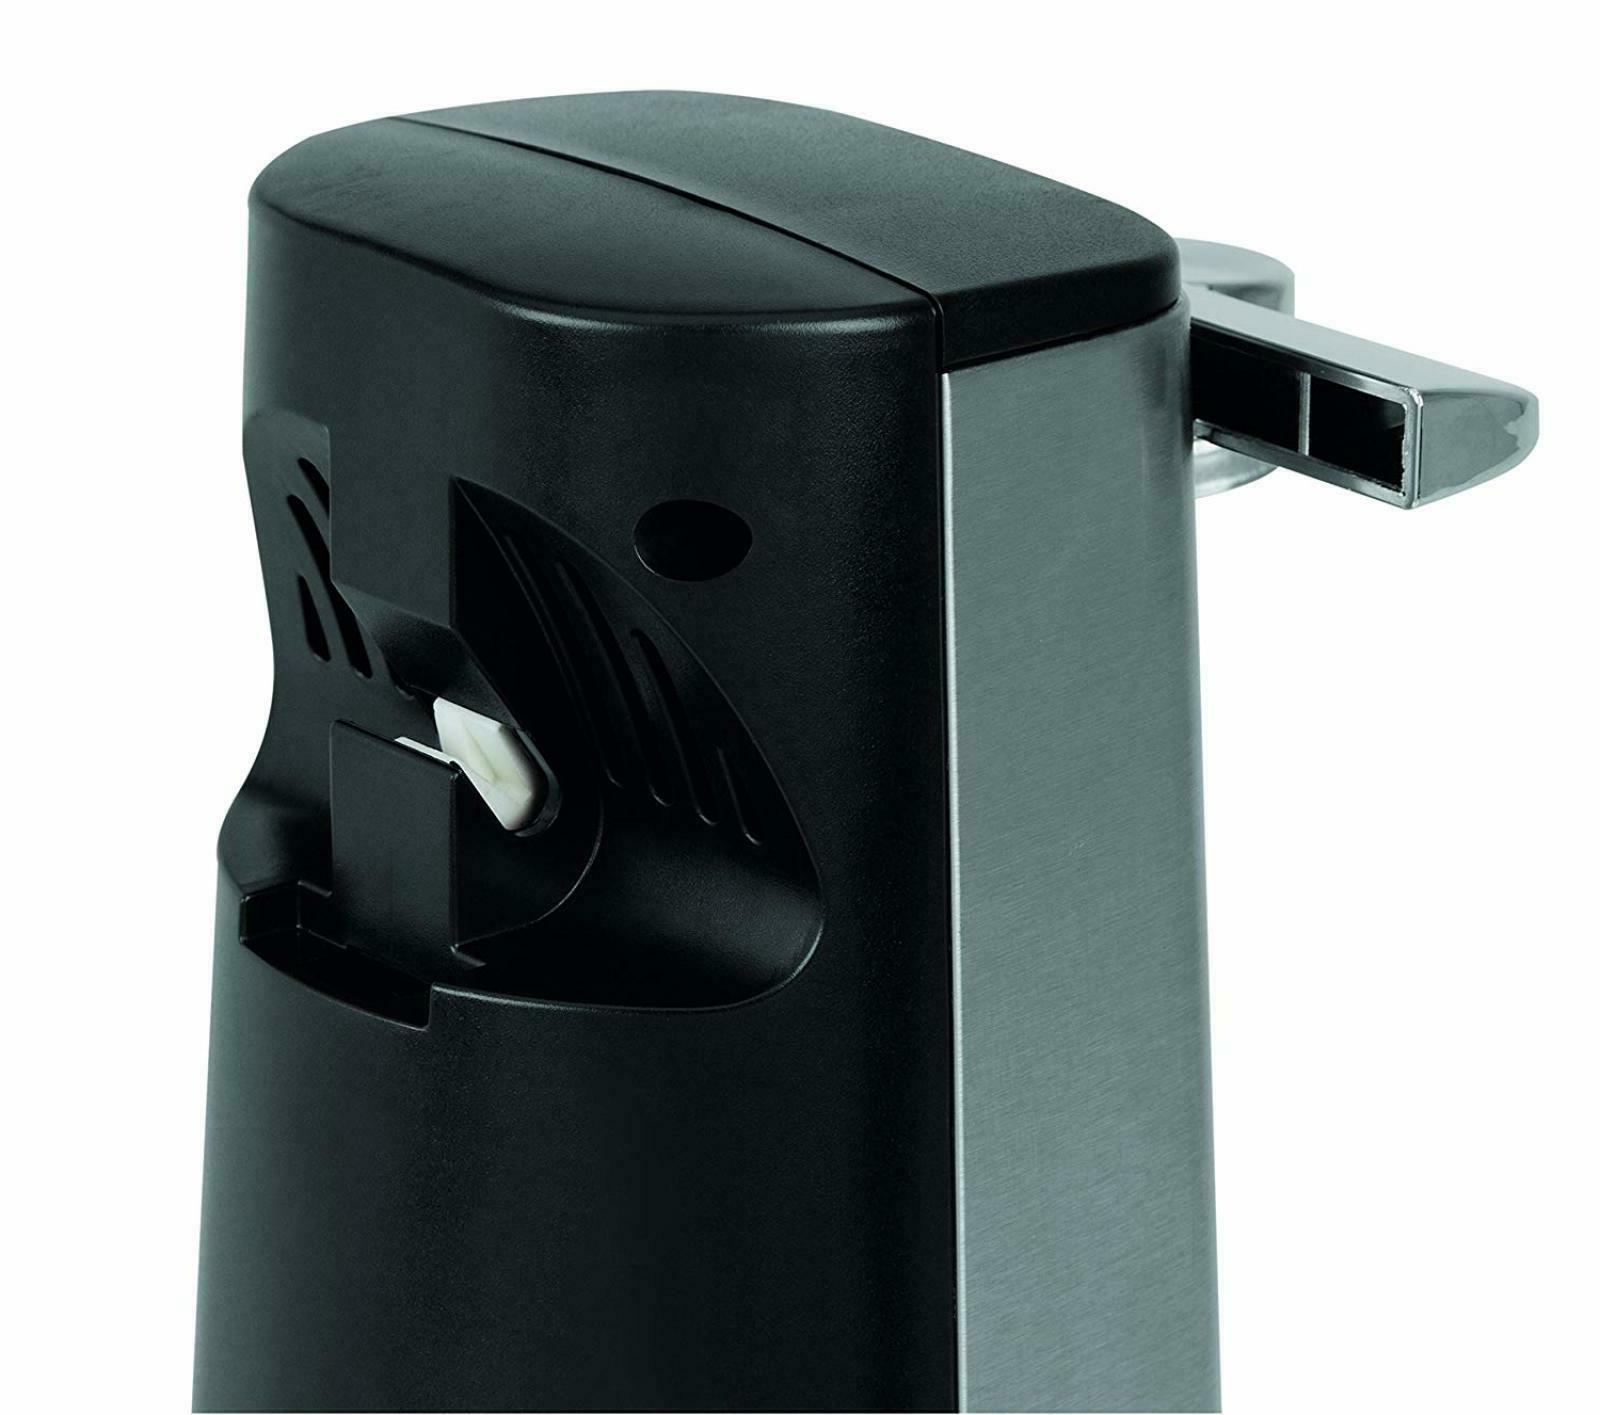 Oster Electric Opener Stainless Steel SELLER